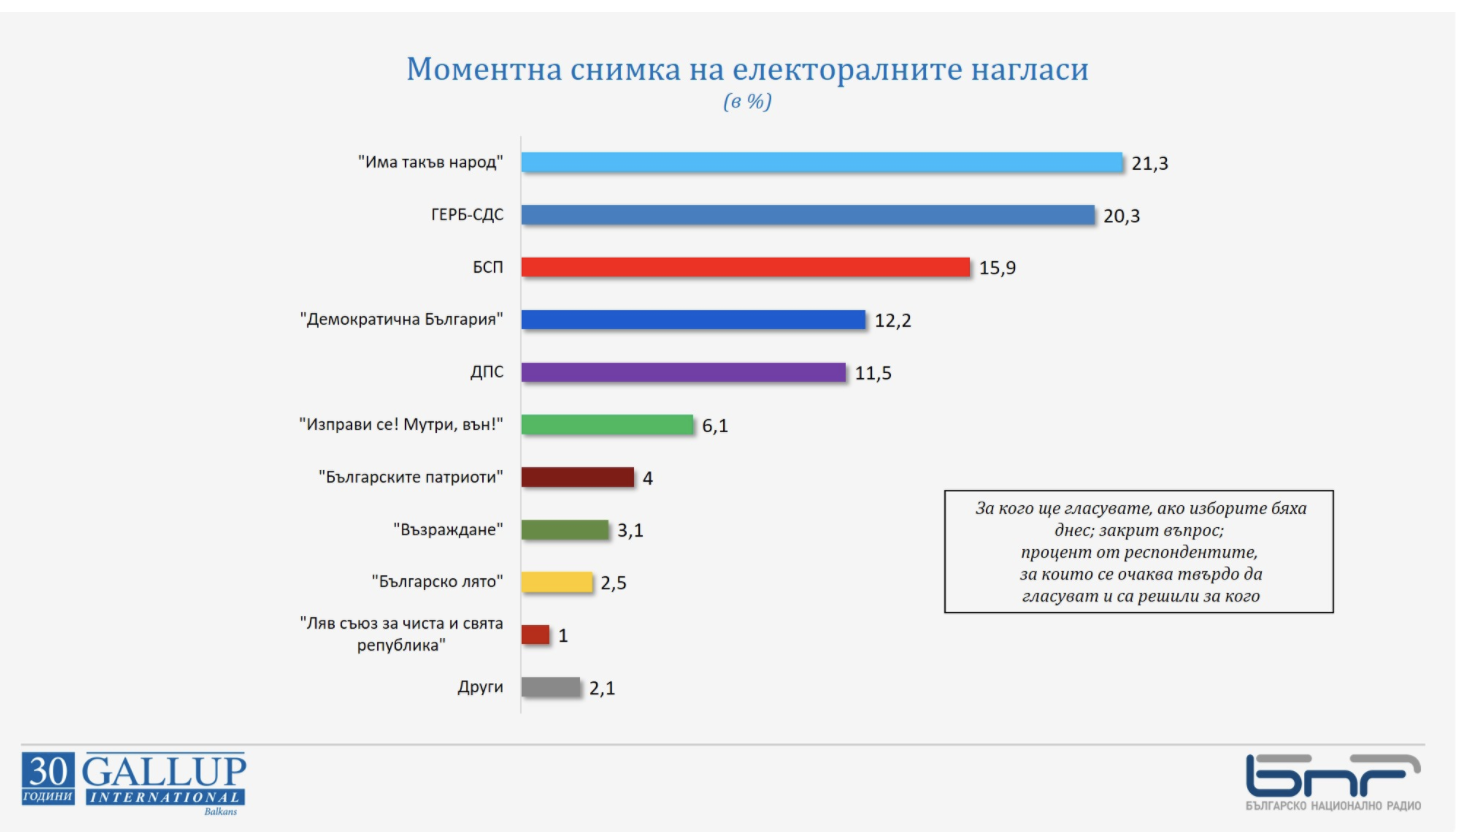 Bulgaria: Unpredictability of elections an important factor according to Gallup